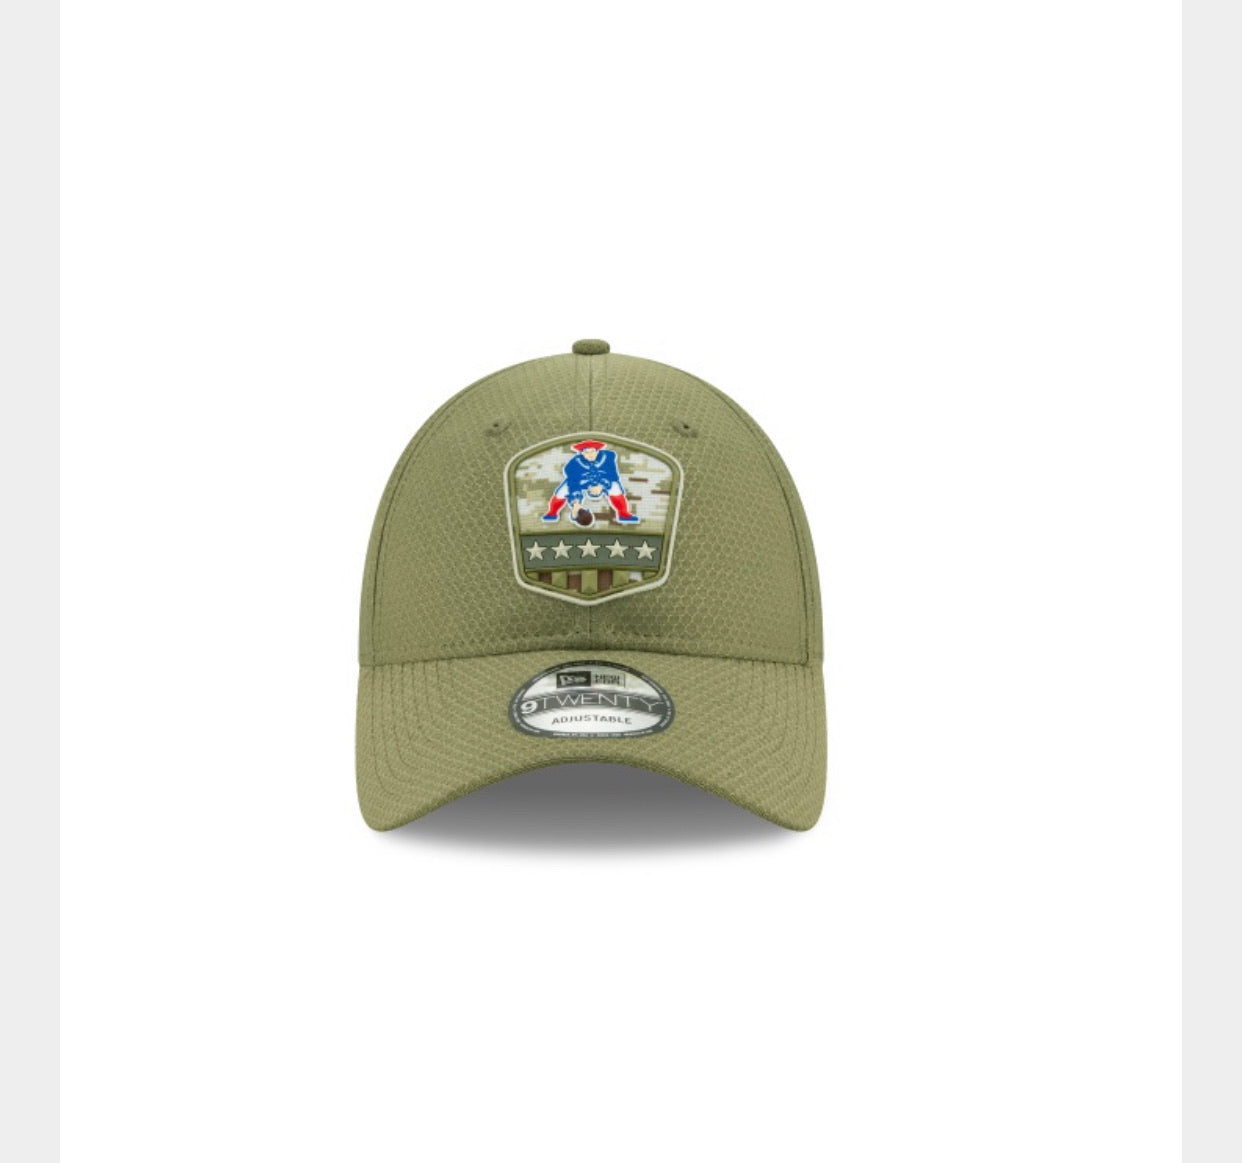 New England Patriots New Era 920 Salute to Service Hat - AtlanticCoastSports